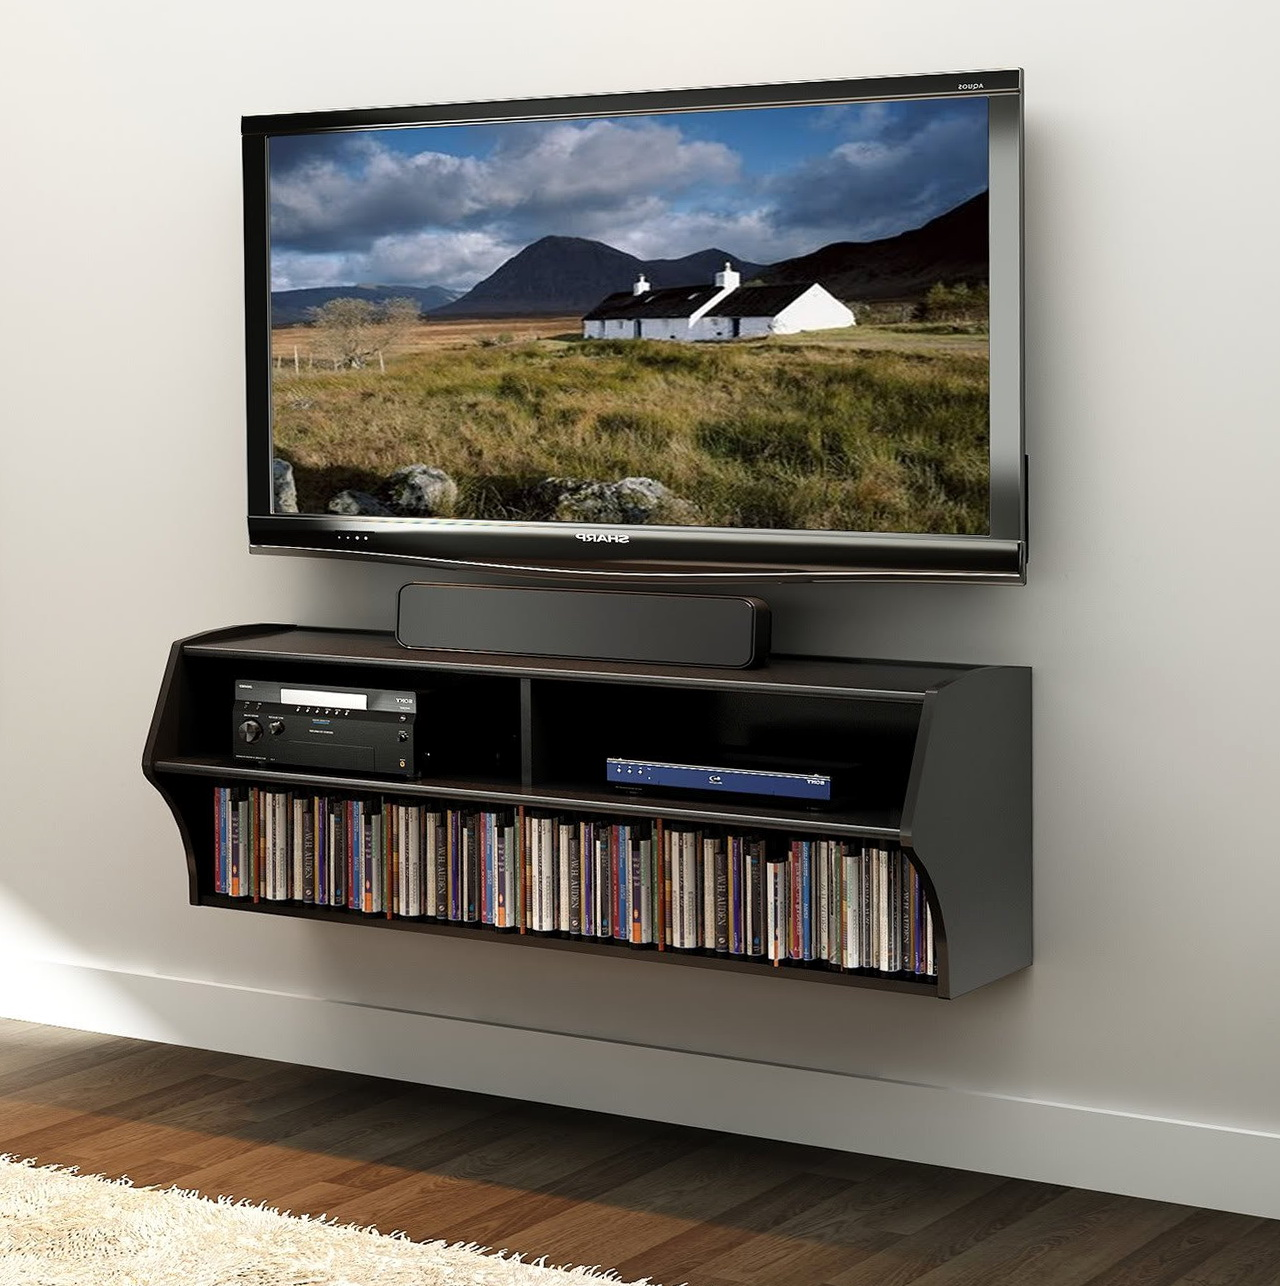 Tv Wall Mount With Shelves Ebay